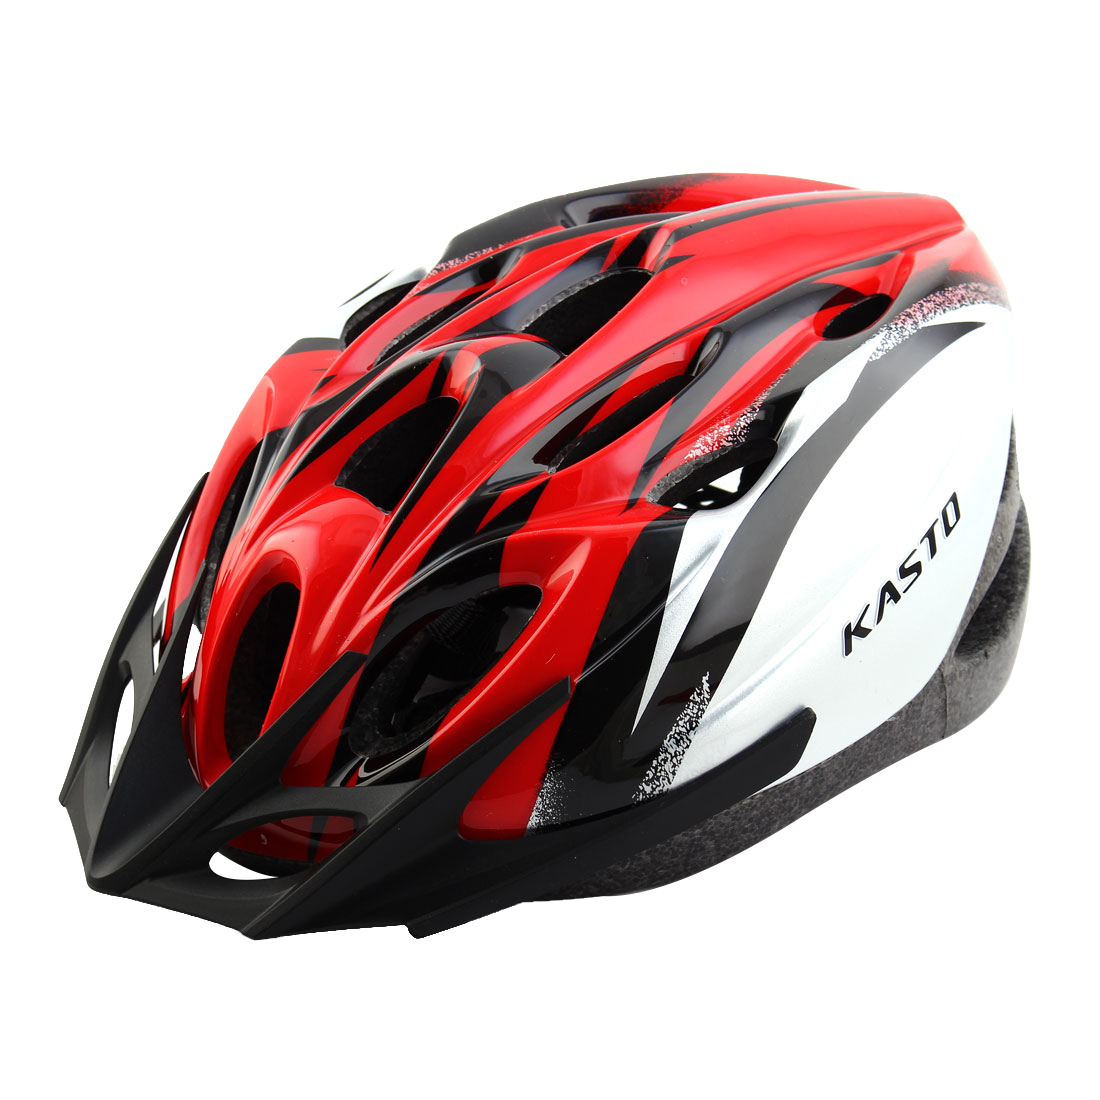 Adult 18 Holes Removable Visor Outdoor Sports Cap Portable Hat Adjustable Cycling Biking Helmet Red